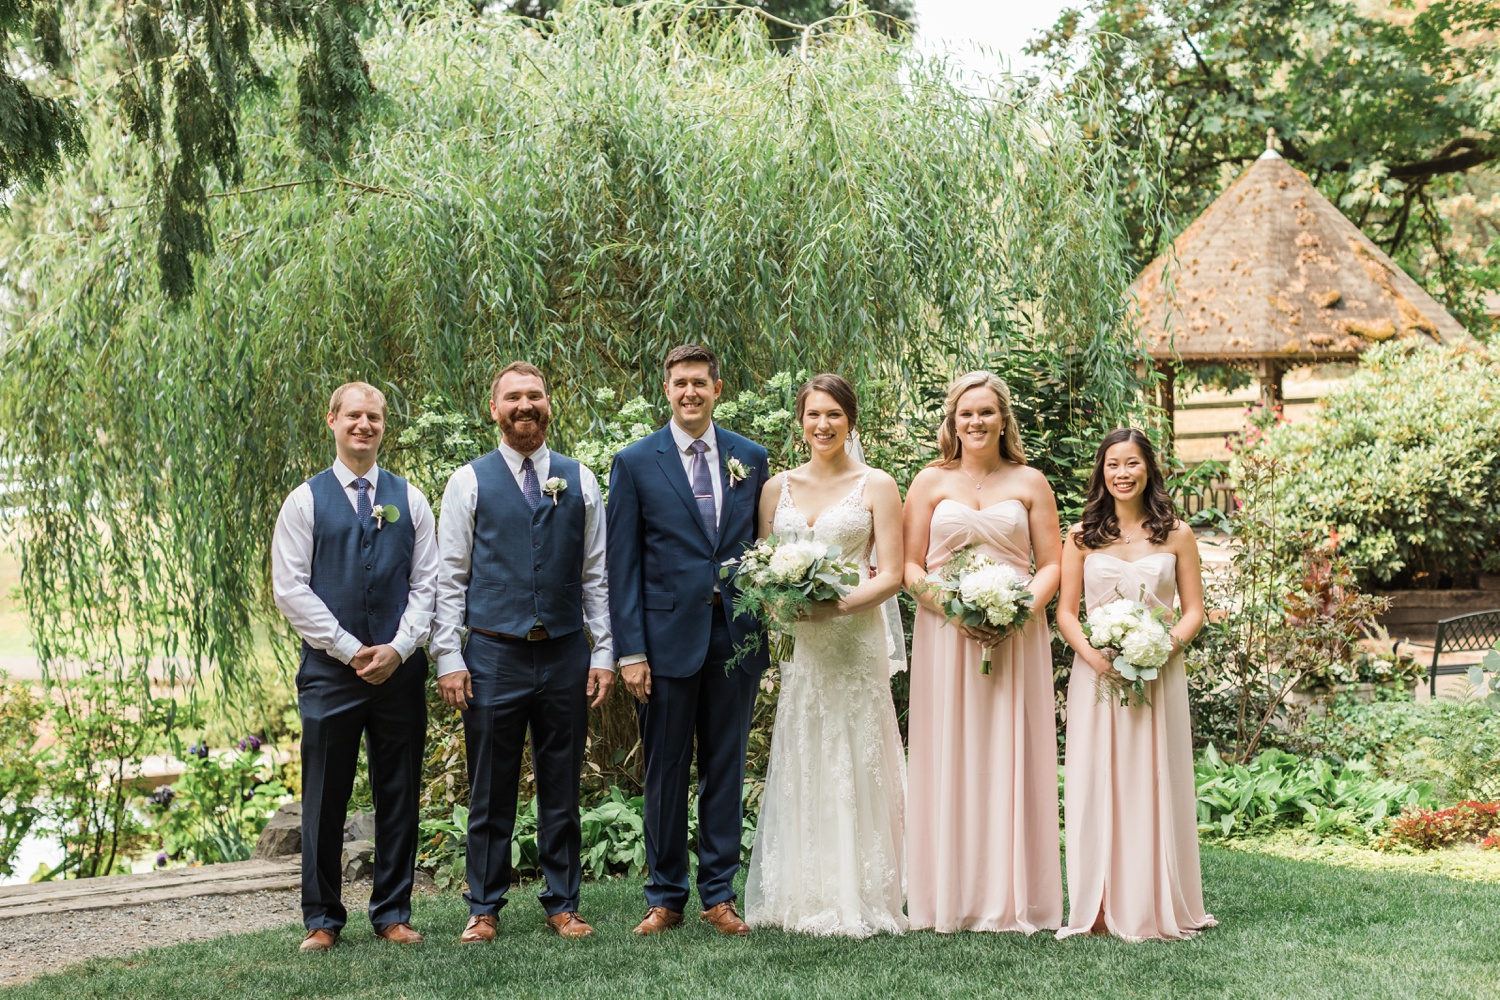 A photo of the wedding party before a wedding at Chateau Lill in Woodinville, a wedding venue near Seattle, WA. | Joanna Monger Photography | Seattle & Snohomish Photographer